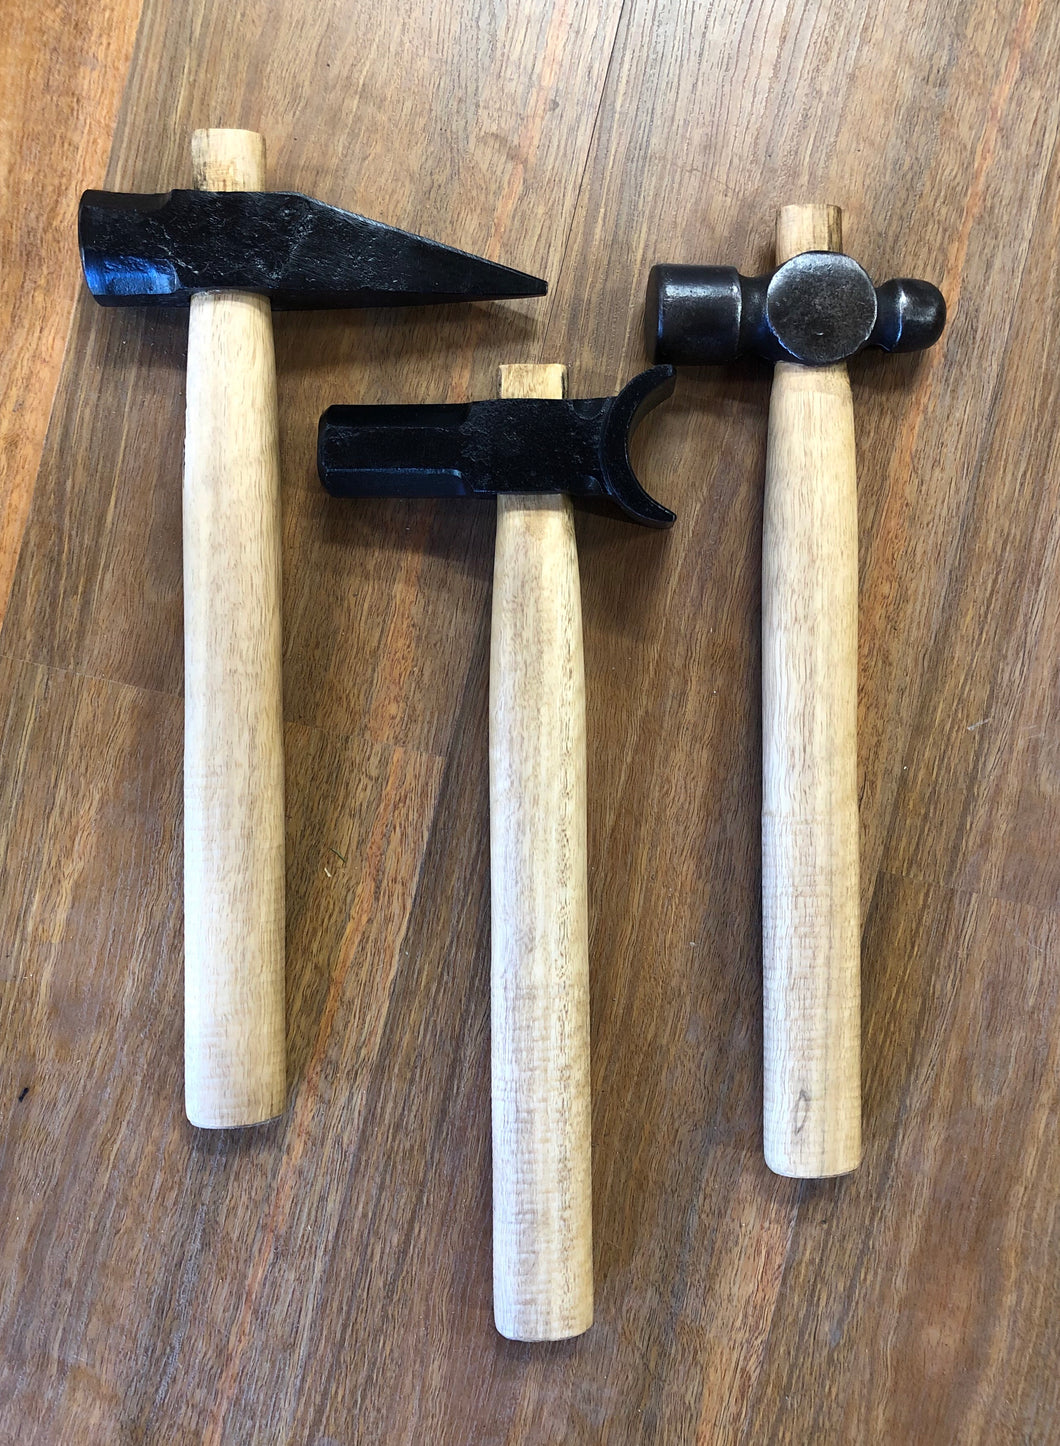 Blacksmith/Boilermaker Hammer/tool. Peining hammer handle++SOLD OUT+++